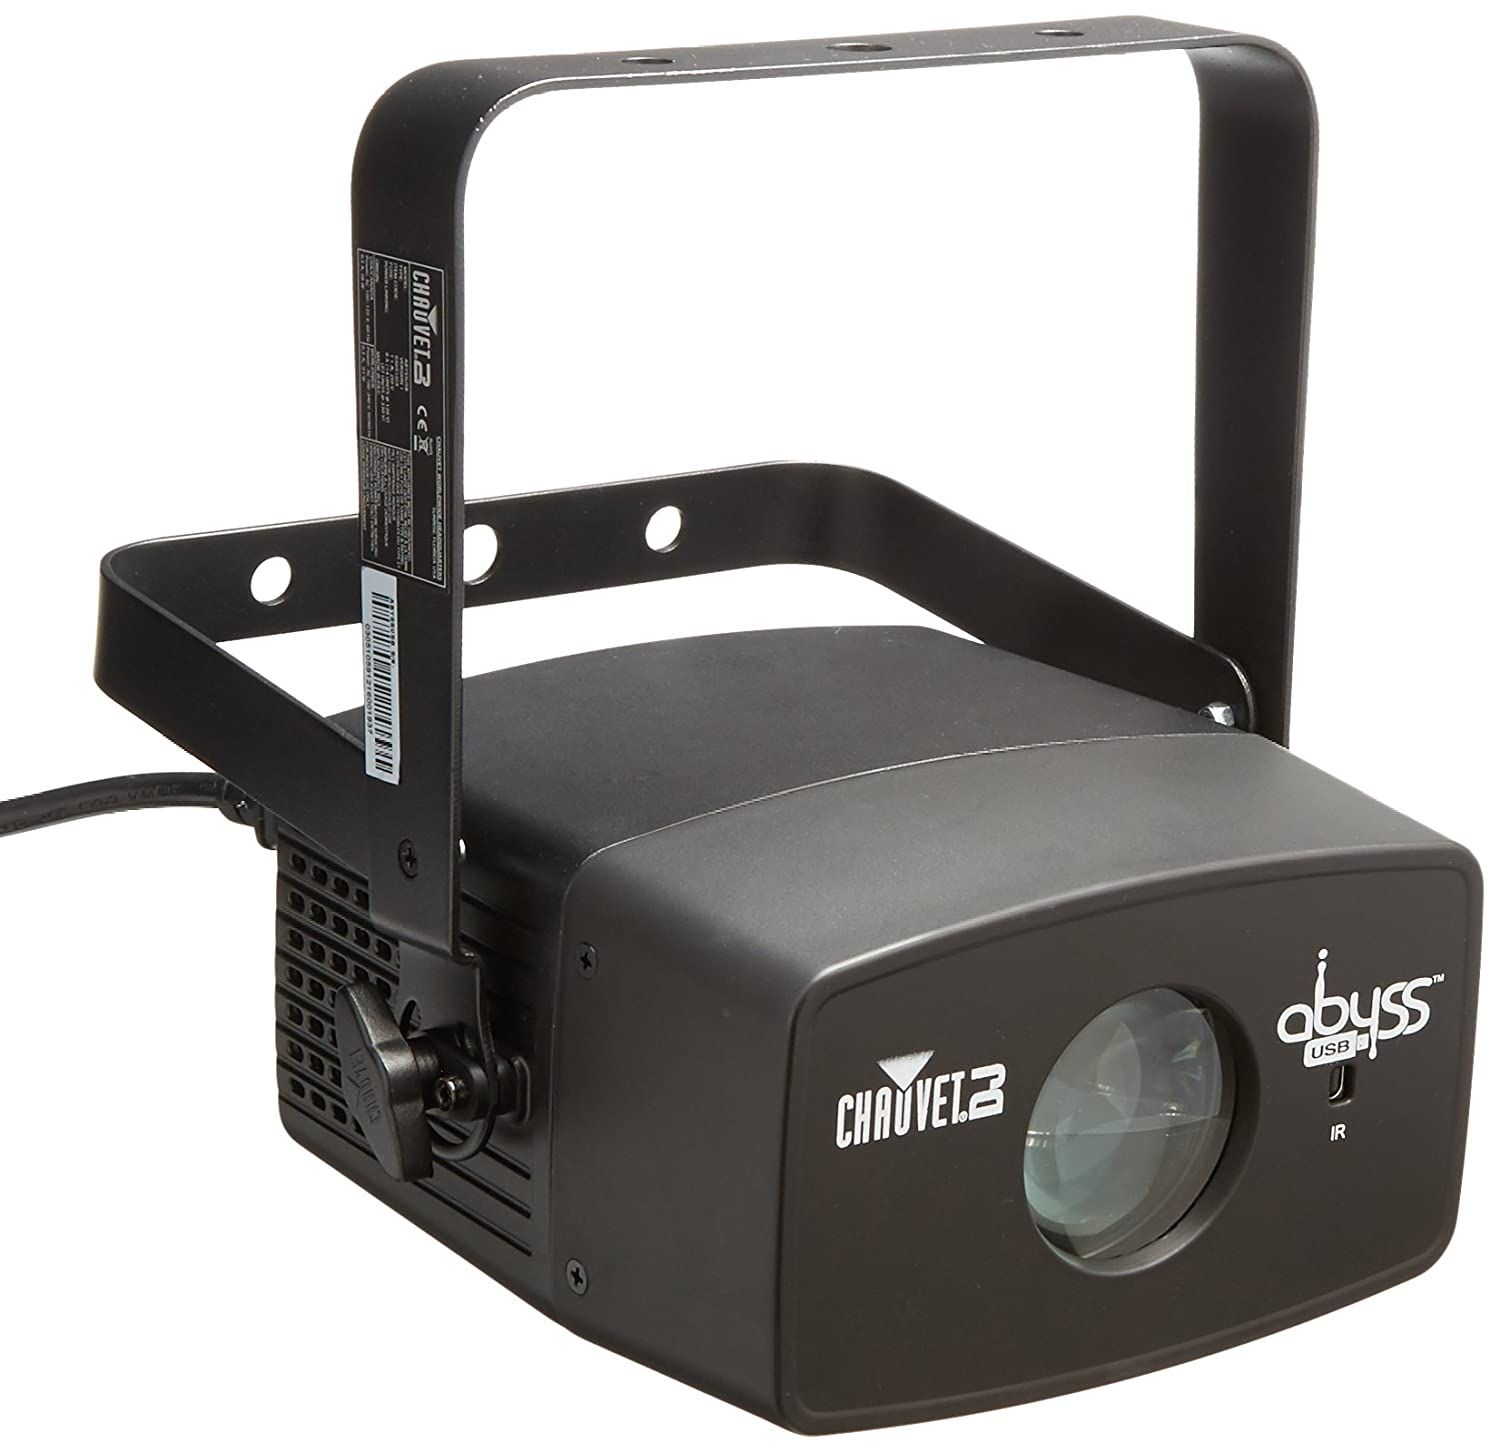 Amazon Chauvet Dj Abyss Usb Led Water Effect Light Special